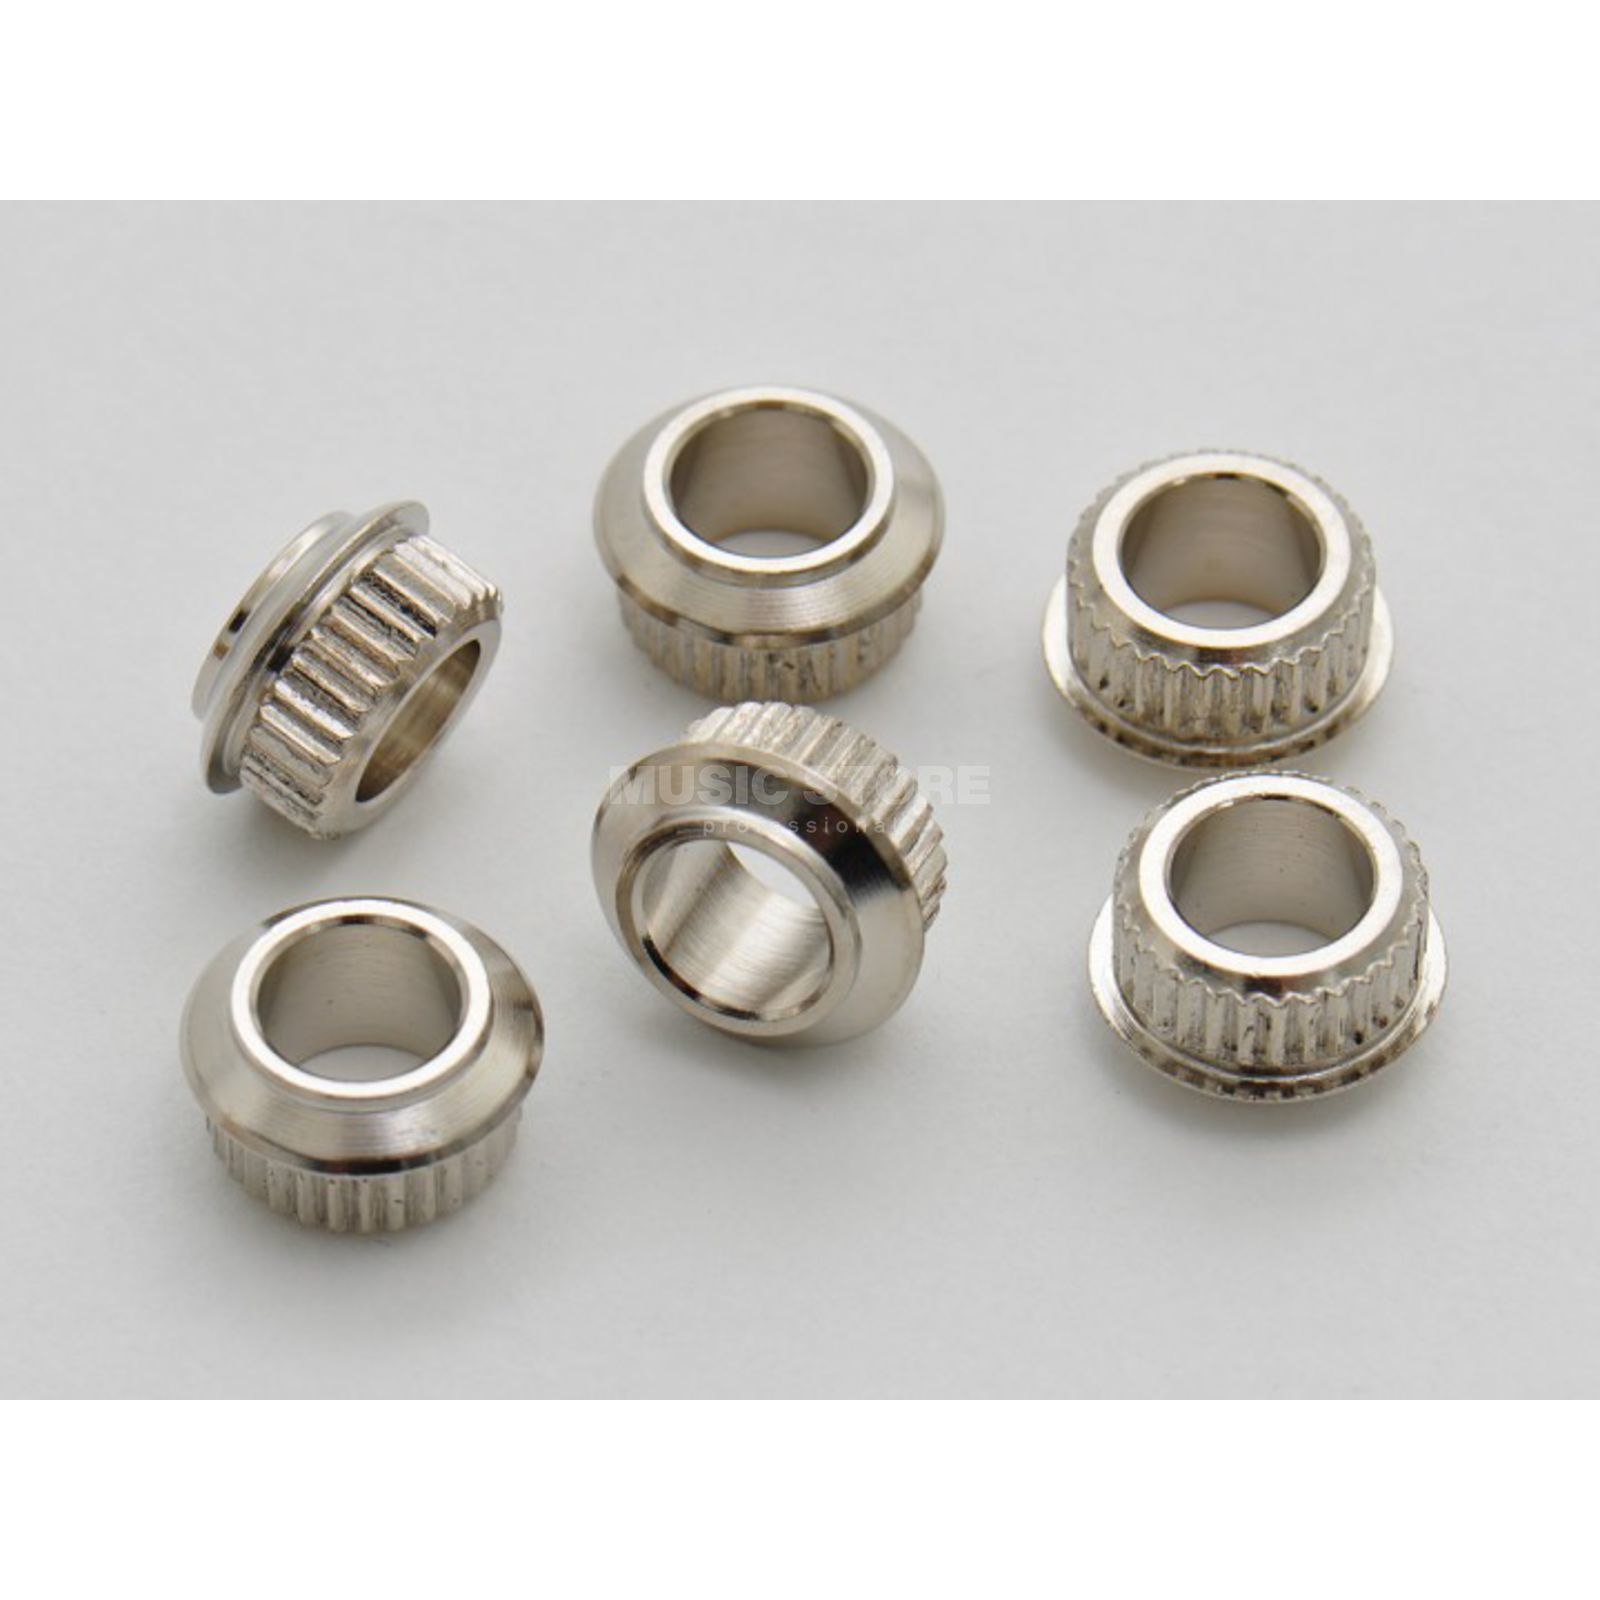 Göldo Mechanik Adapterhülsen 6er Set 6,5 - 10mm, Nickel Produktbild